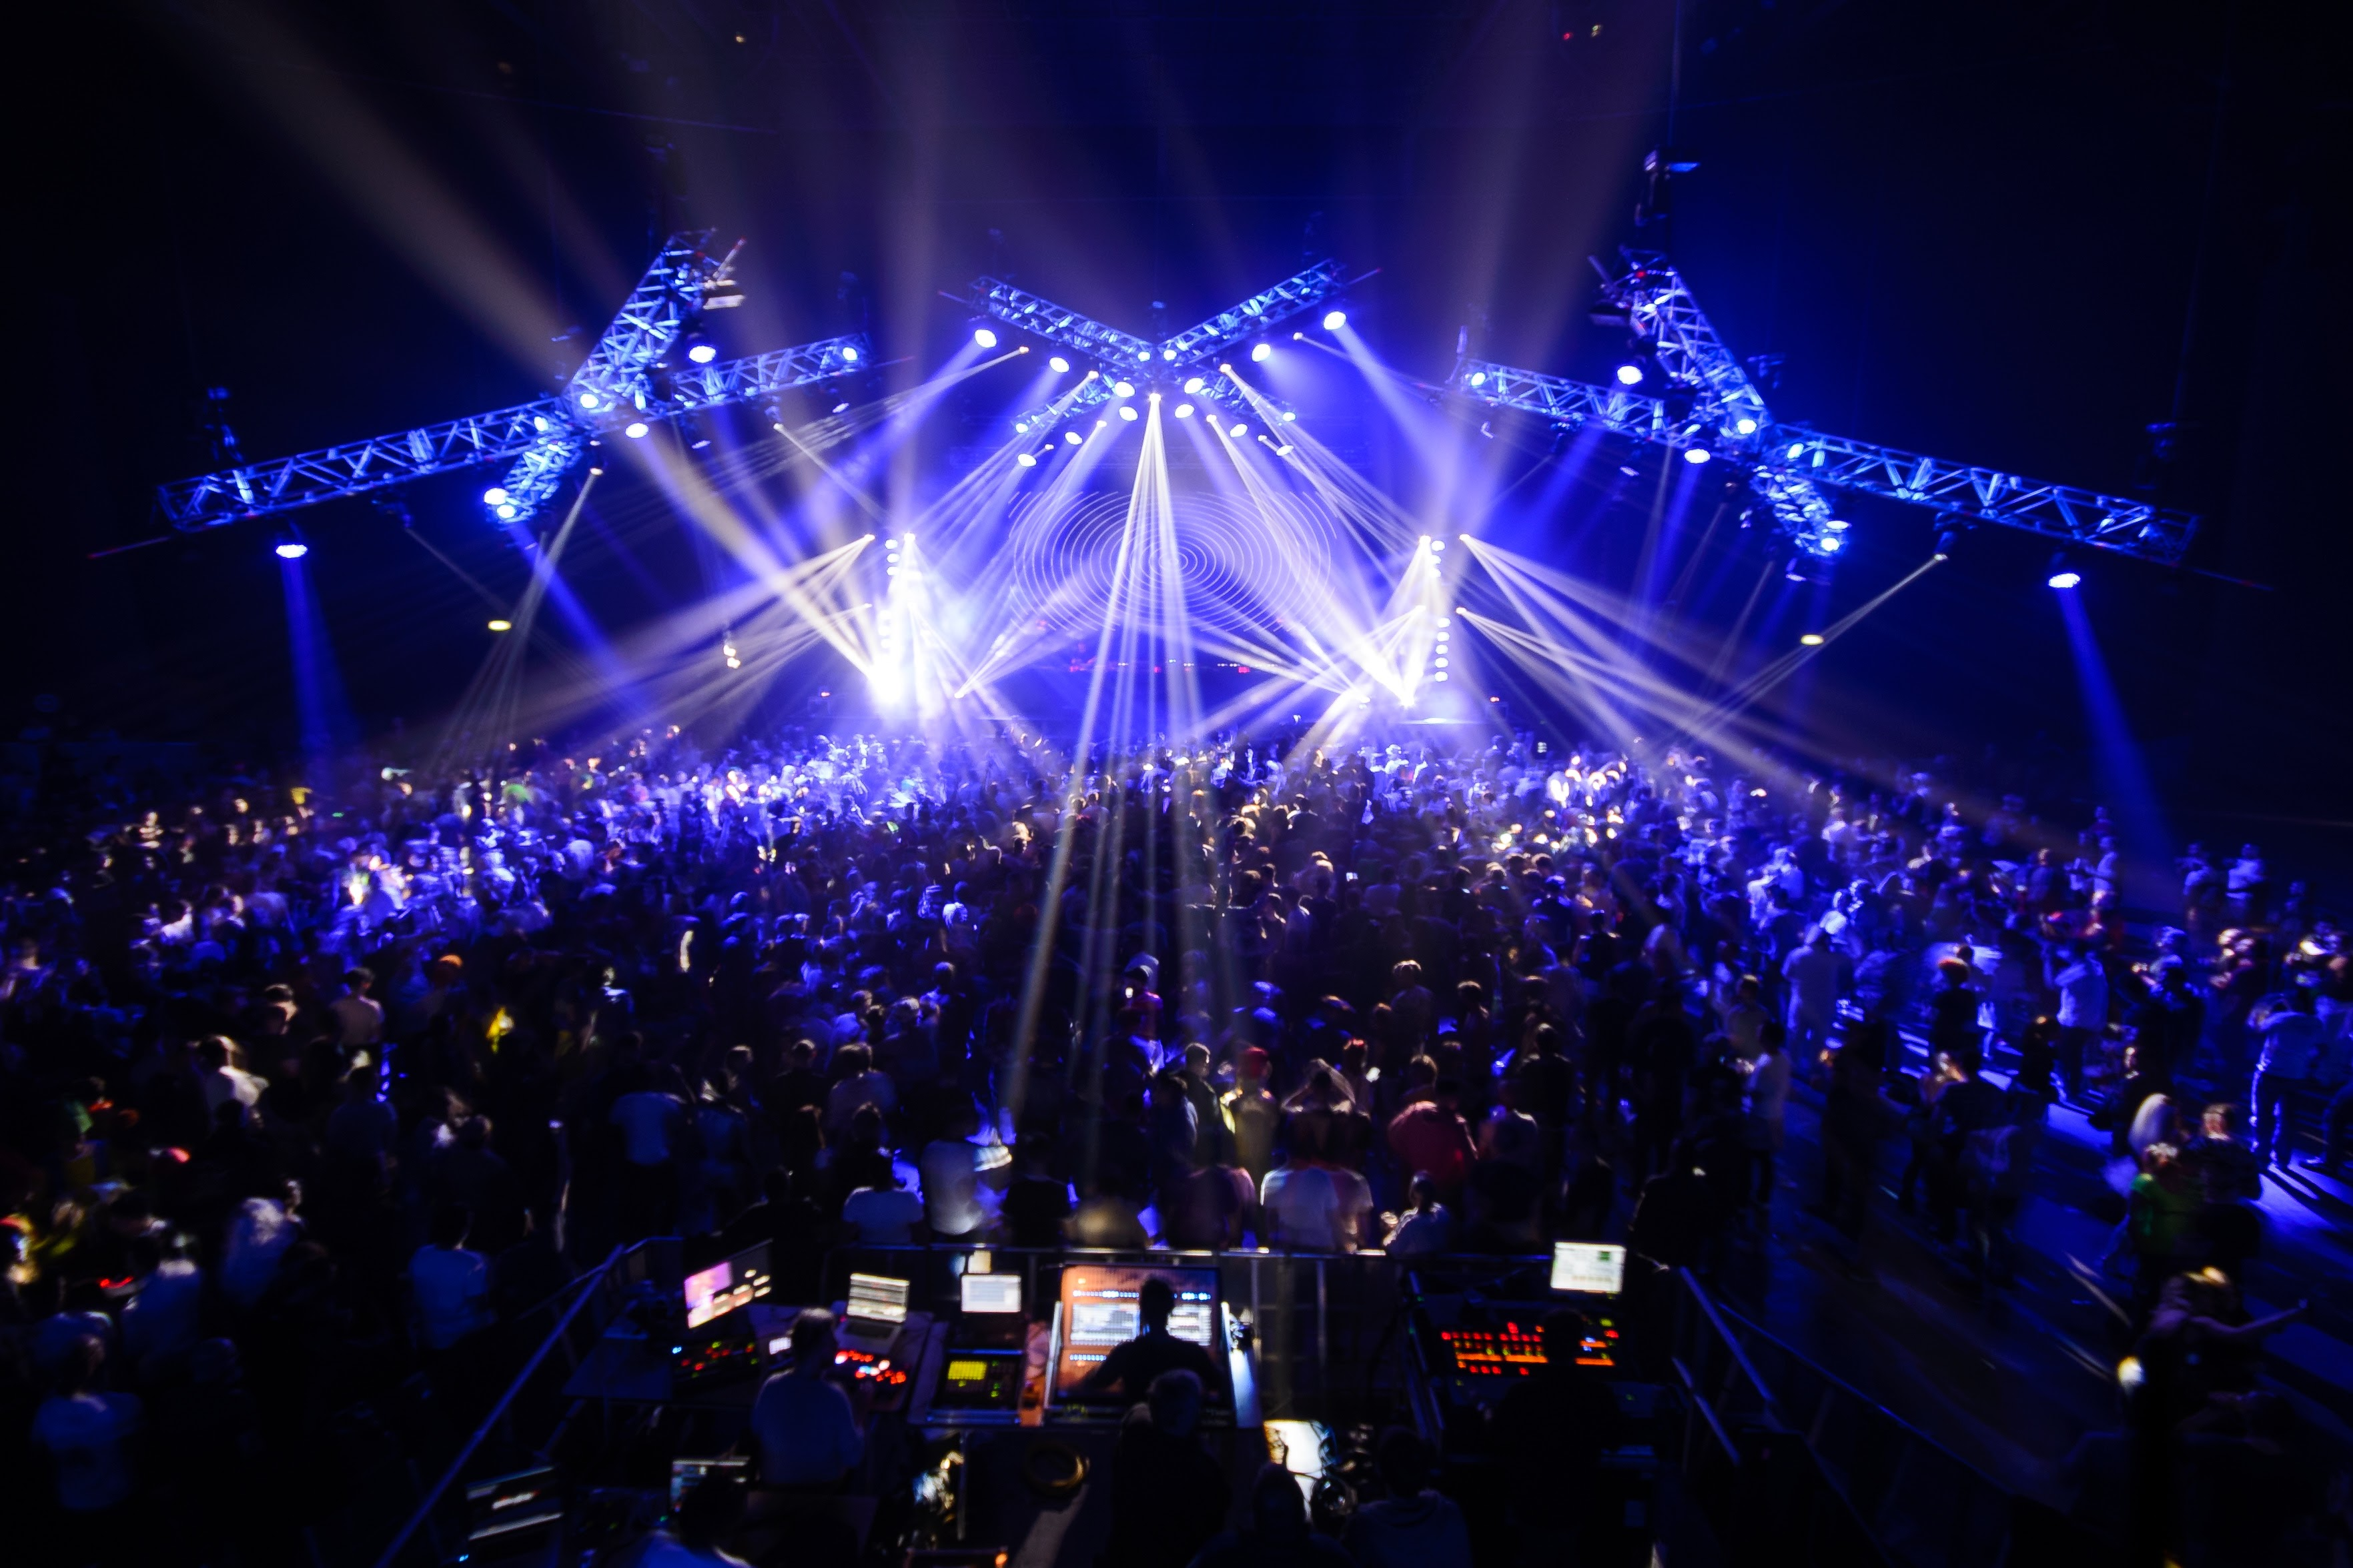 winterparty-at-3arena-dublin-30-10-2016-by-sean-smyth-53-of-53